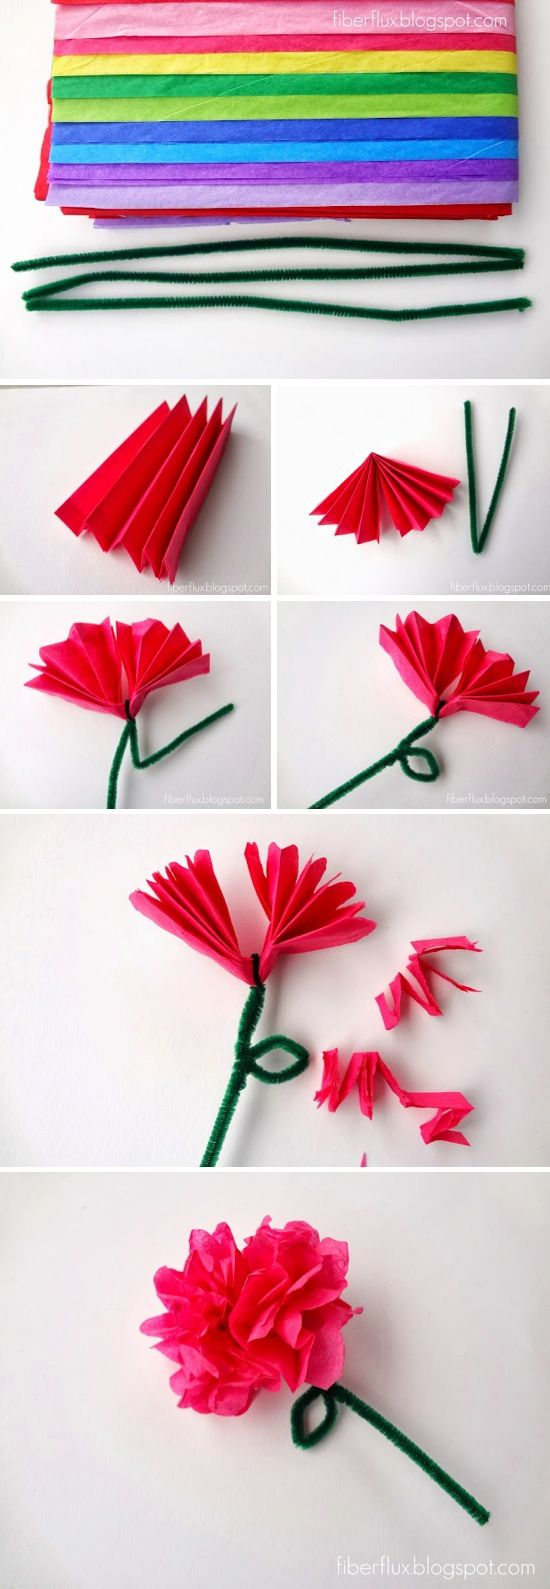 7 best christmas craft videos images on pinterest diy christmas easy tissue paper flowers is a photo craft tutorial showing how to use tissue paper to make various types of decorative flowers jeuxipadfo Gallery